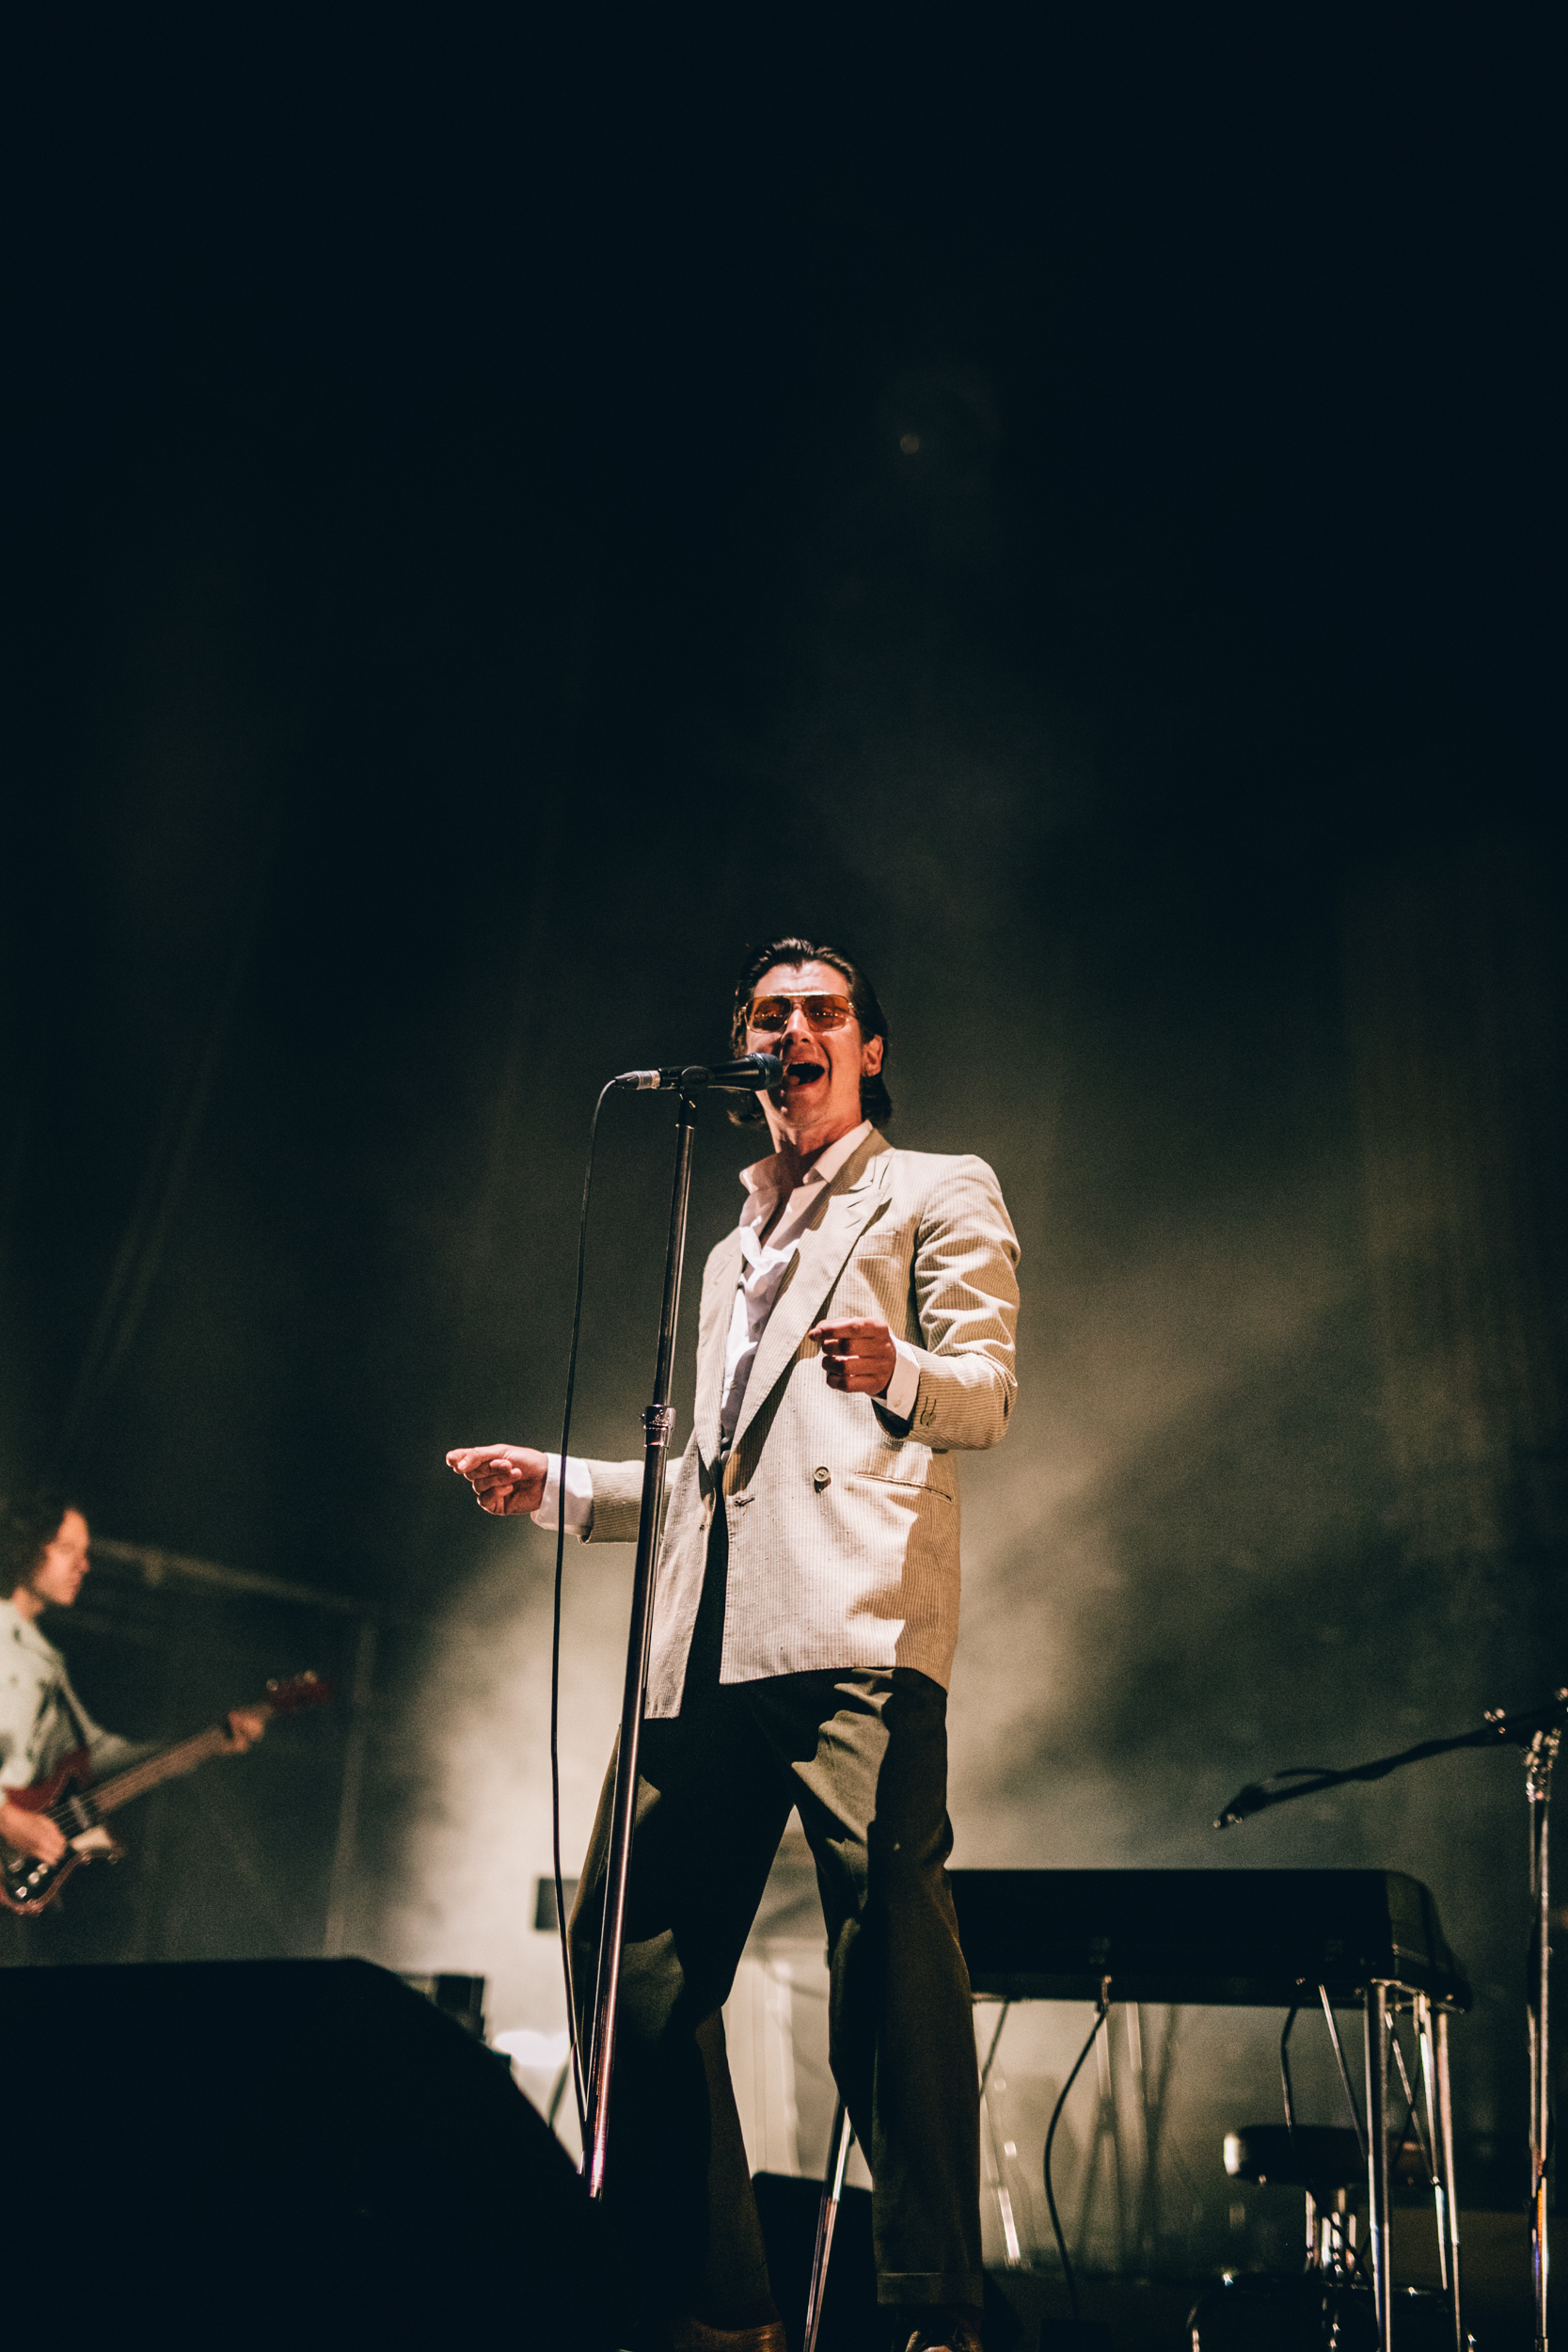 Alex Turner gets into croon mode during the band's thrilling set on opening night, Thursday 12 July. Credit: Arlindo Camacho